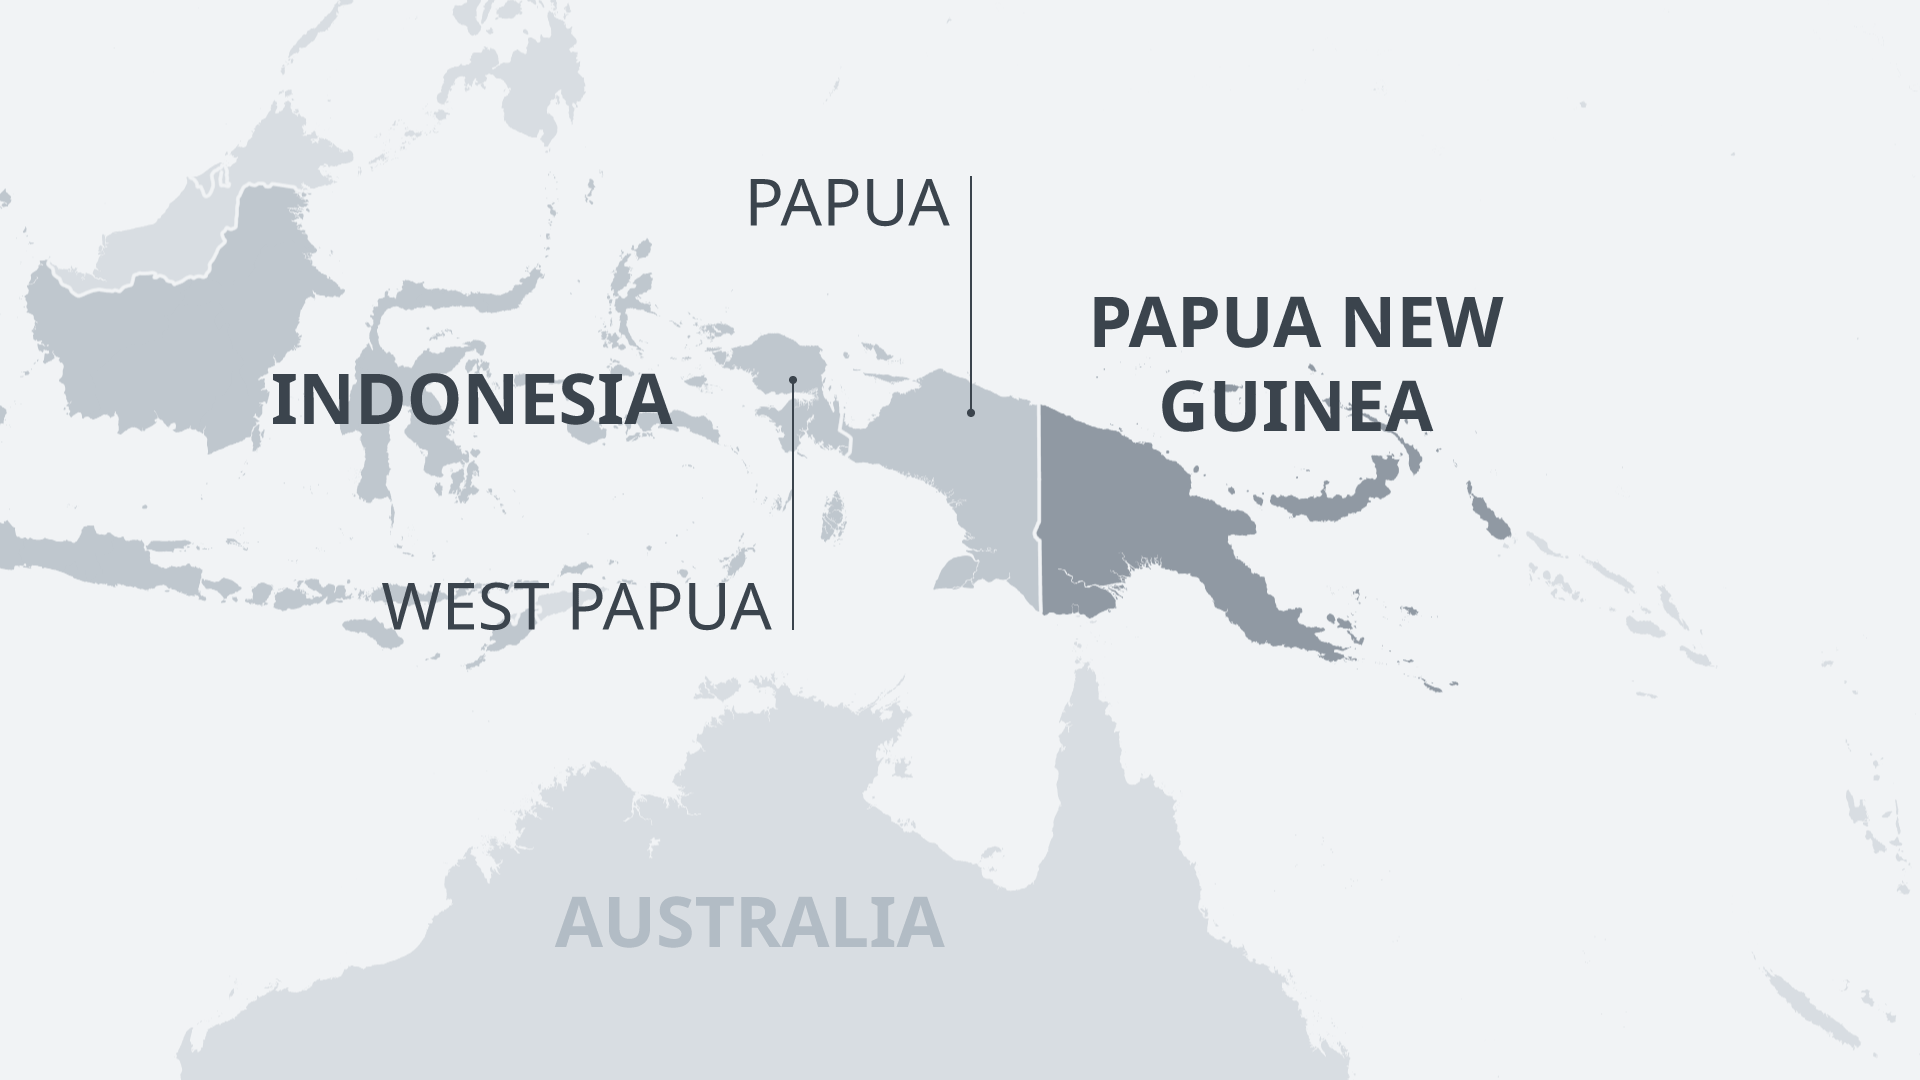 New Guinea map with Indonesia